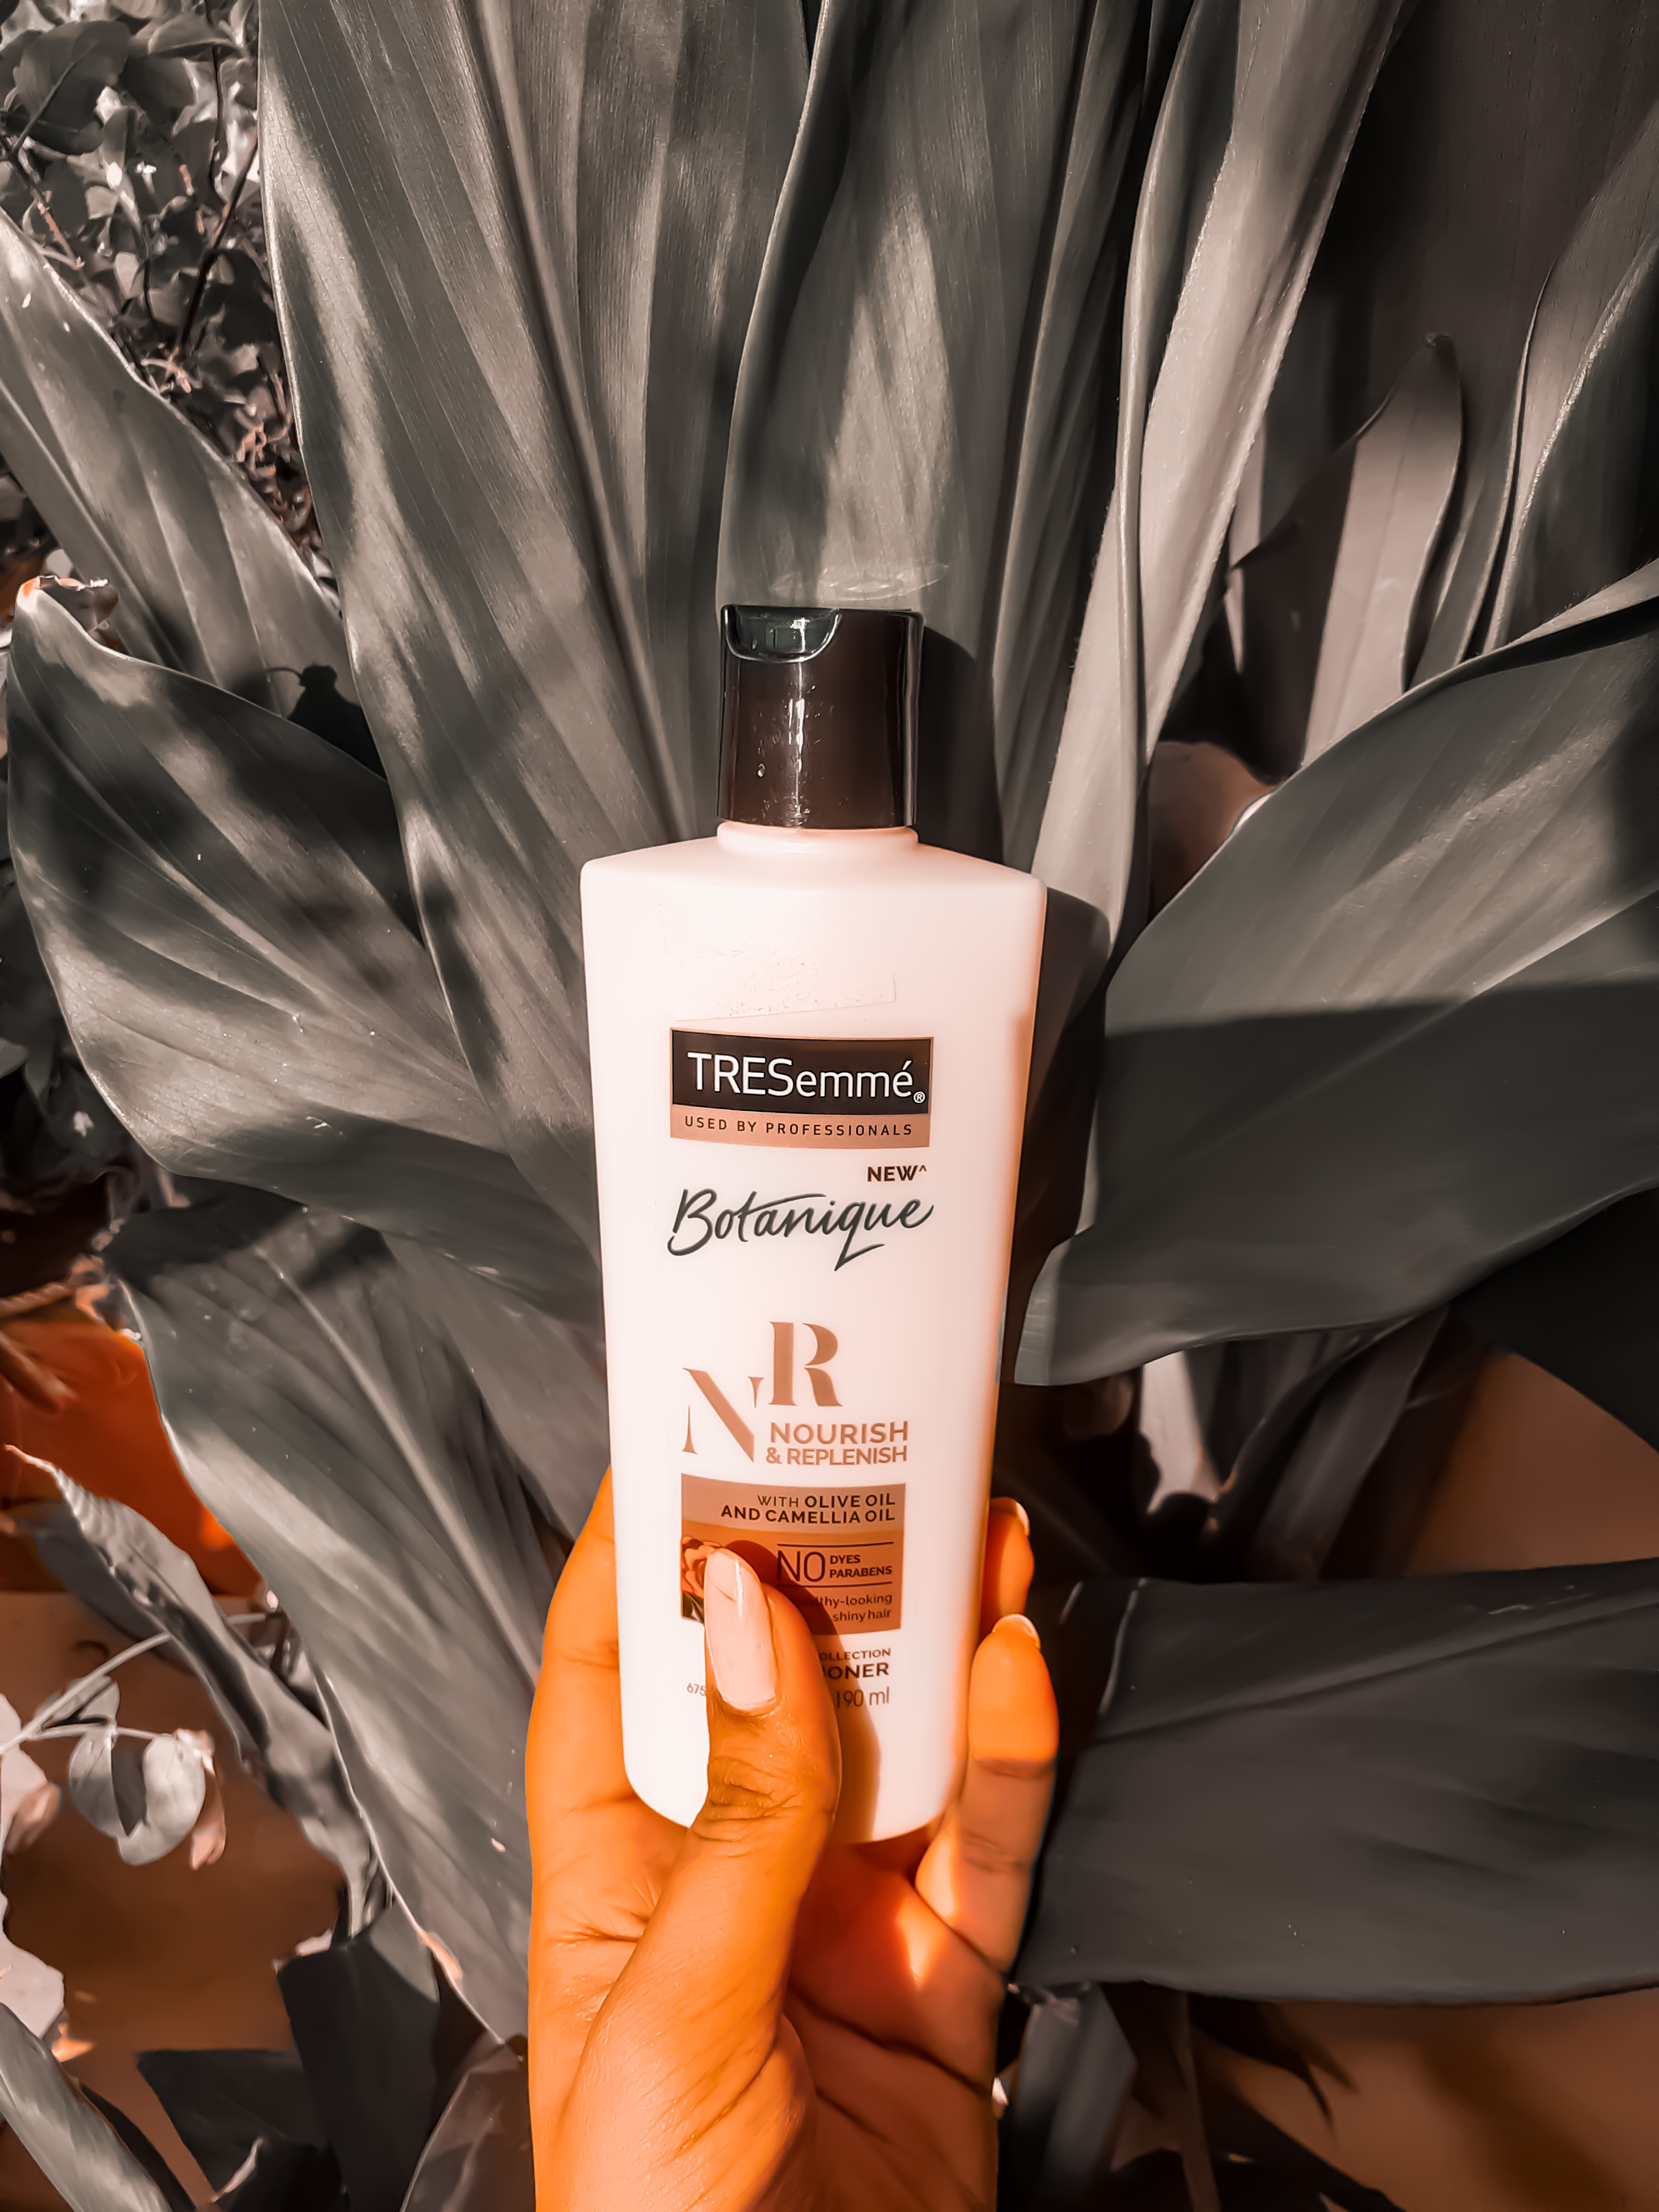 Tresemme Botanique Nourish And Replenish Conditioner-My all time favorite conditioner!!-By theleogirl